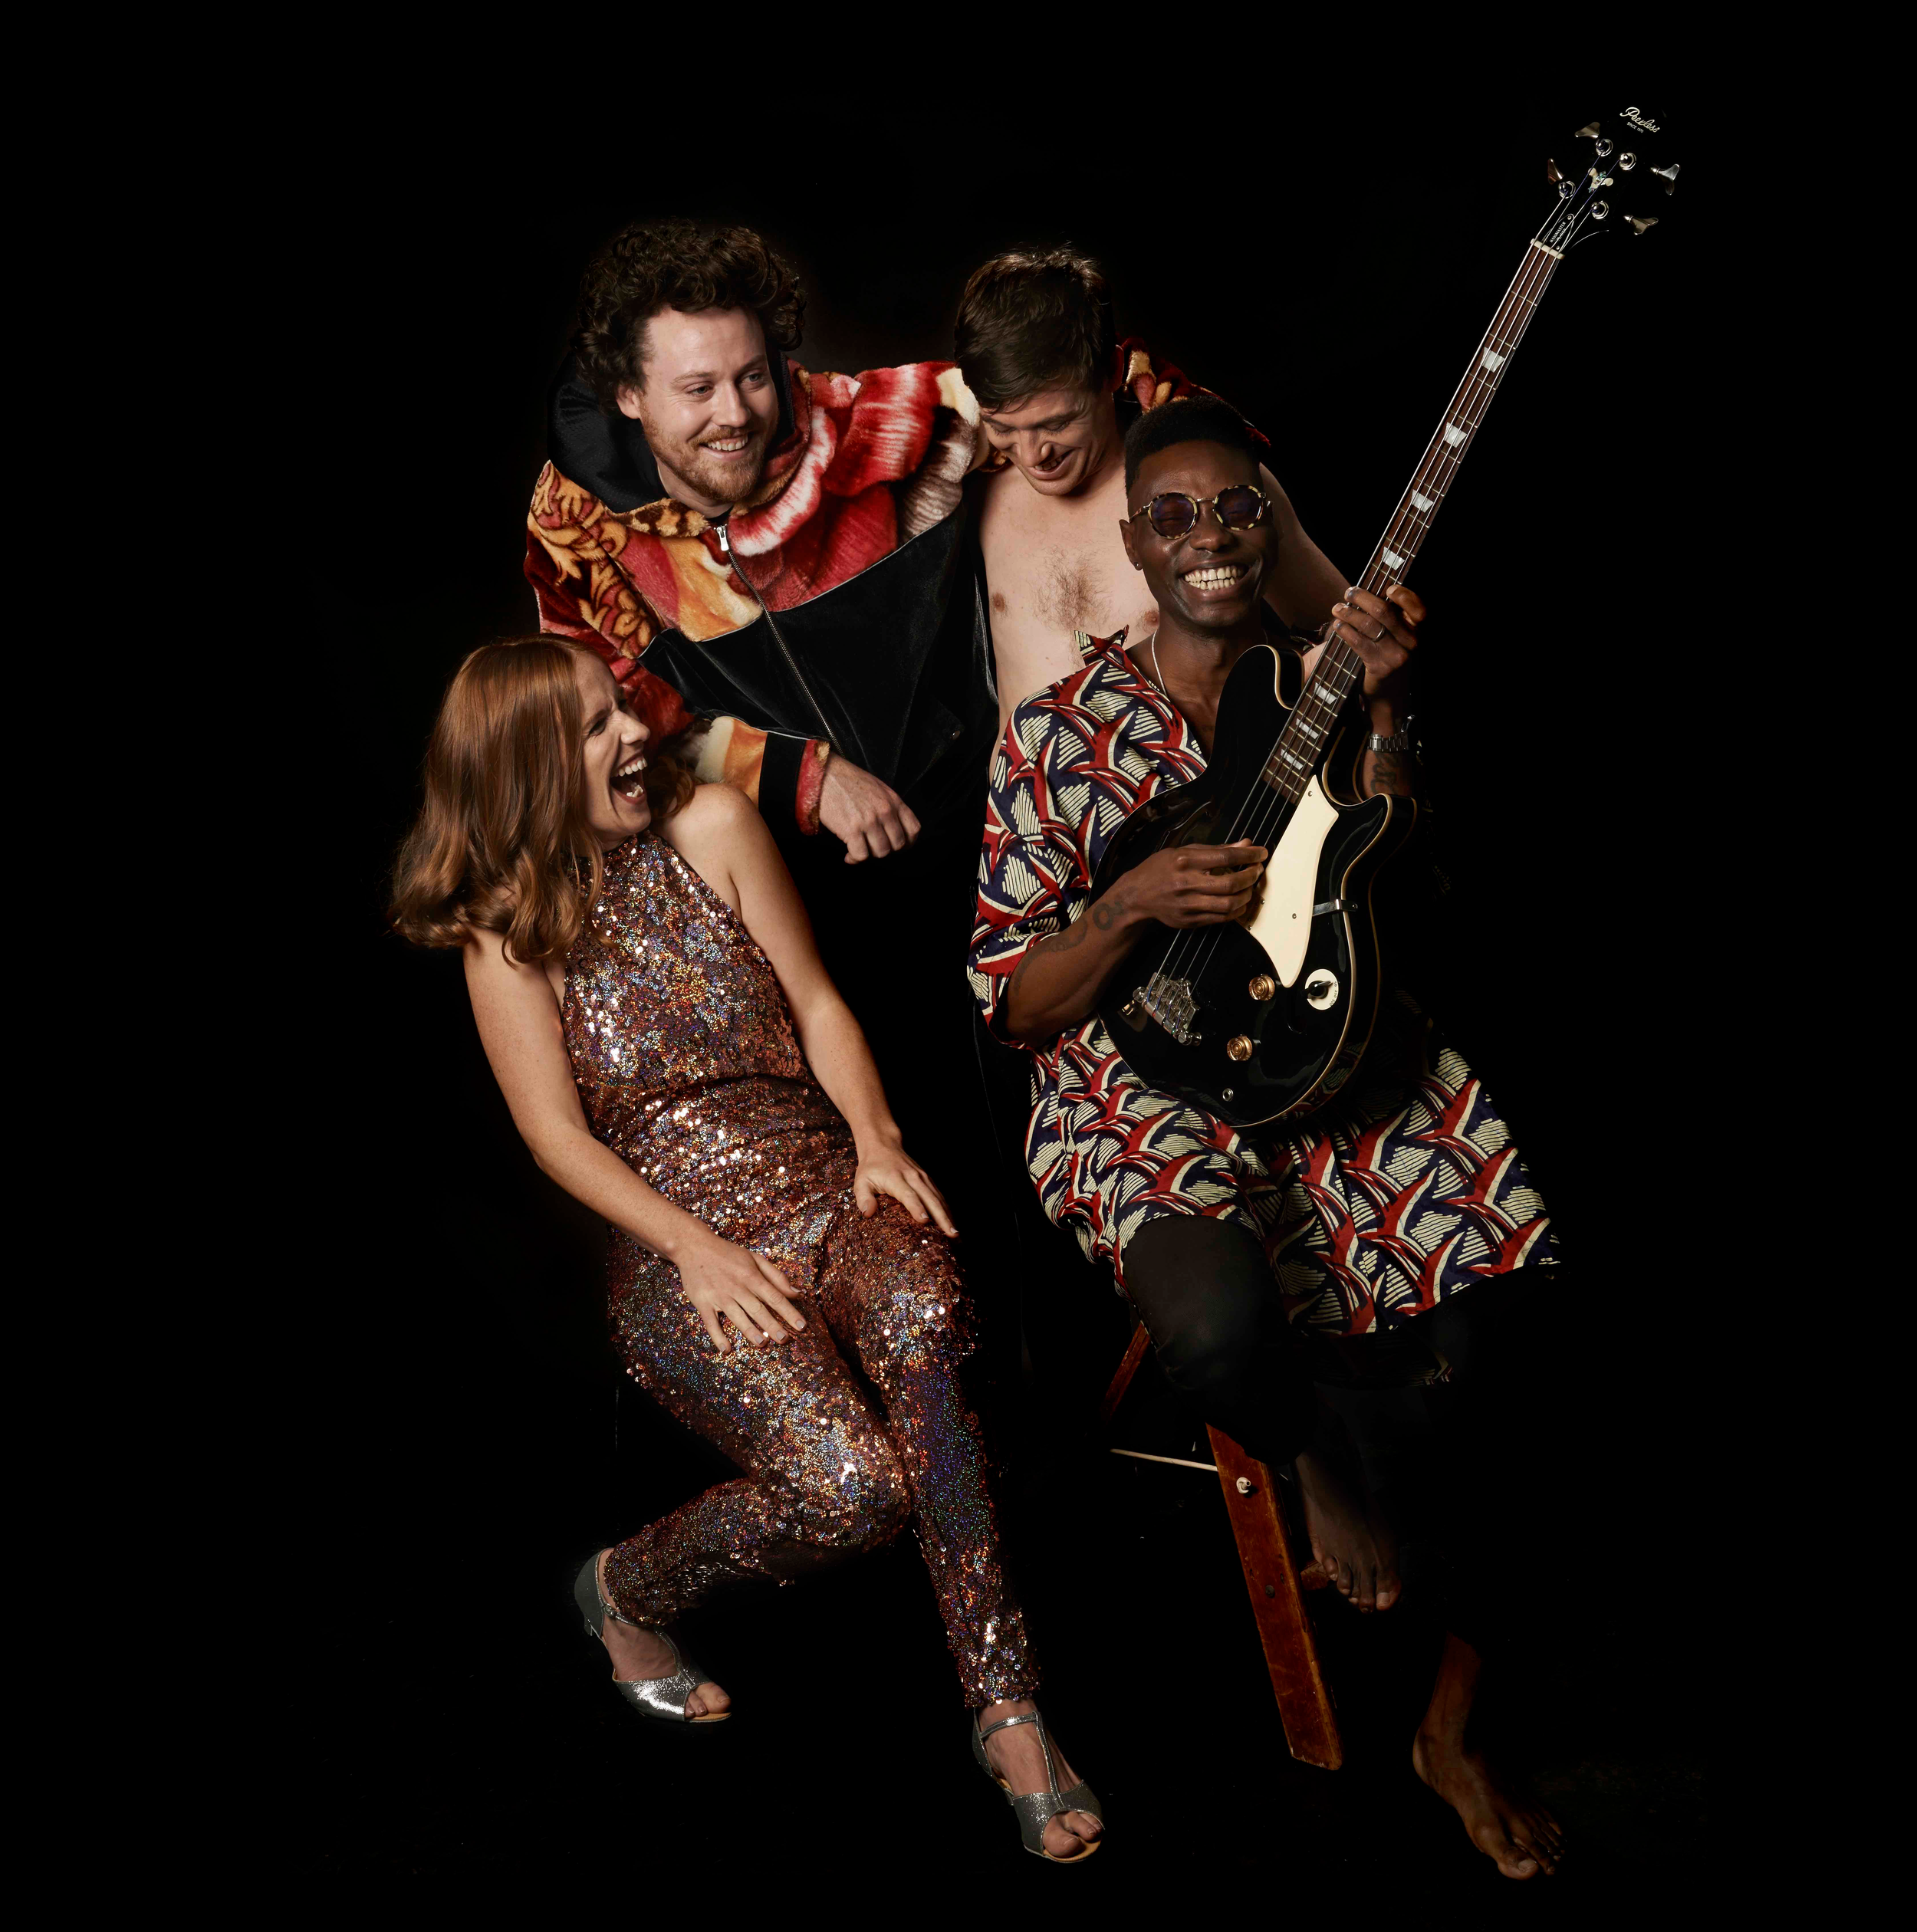 METRONOMY - Metronomy's latestalbum'Summer 08'found multi-instrumentalist JoeMountreflecting on his experiences around the time that Metronomyfirst landed a major breakthrough with the 'Nights Out'album –the guilt at spending key moments in loved ones' lives in the back of a tour bus, and the confused mania of finding himself a critical darling. With a string of rare yet consistently sold-out shows under their belt since the album release;By The Seawill present Metronomywith a chance to play to an intimate crowd in a particularly striking environment on Saturday 30th September. Mounthas been working on material with the new and currently unreleased track 'Lately'becoming a staple of live shows.